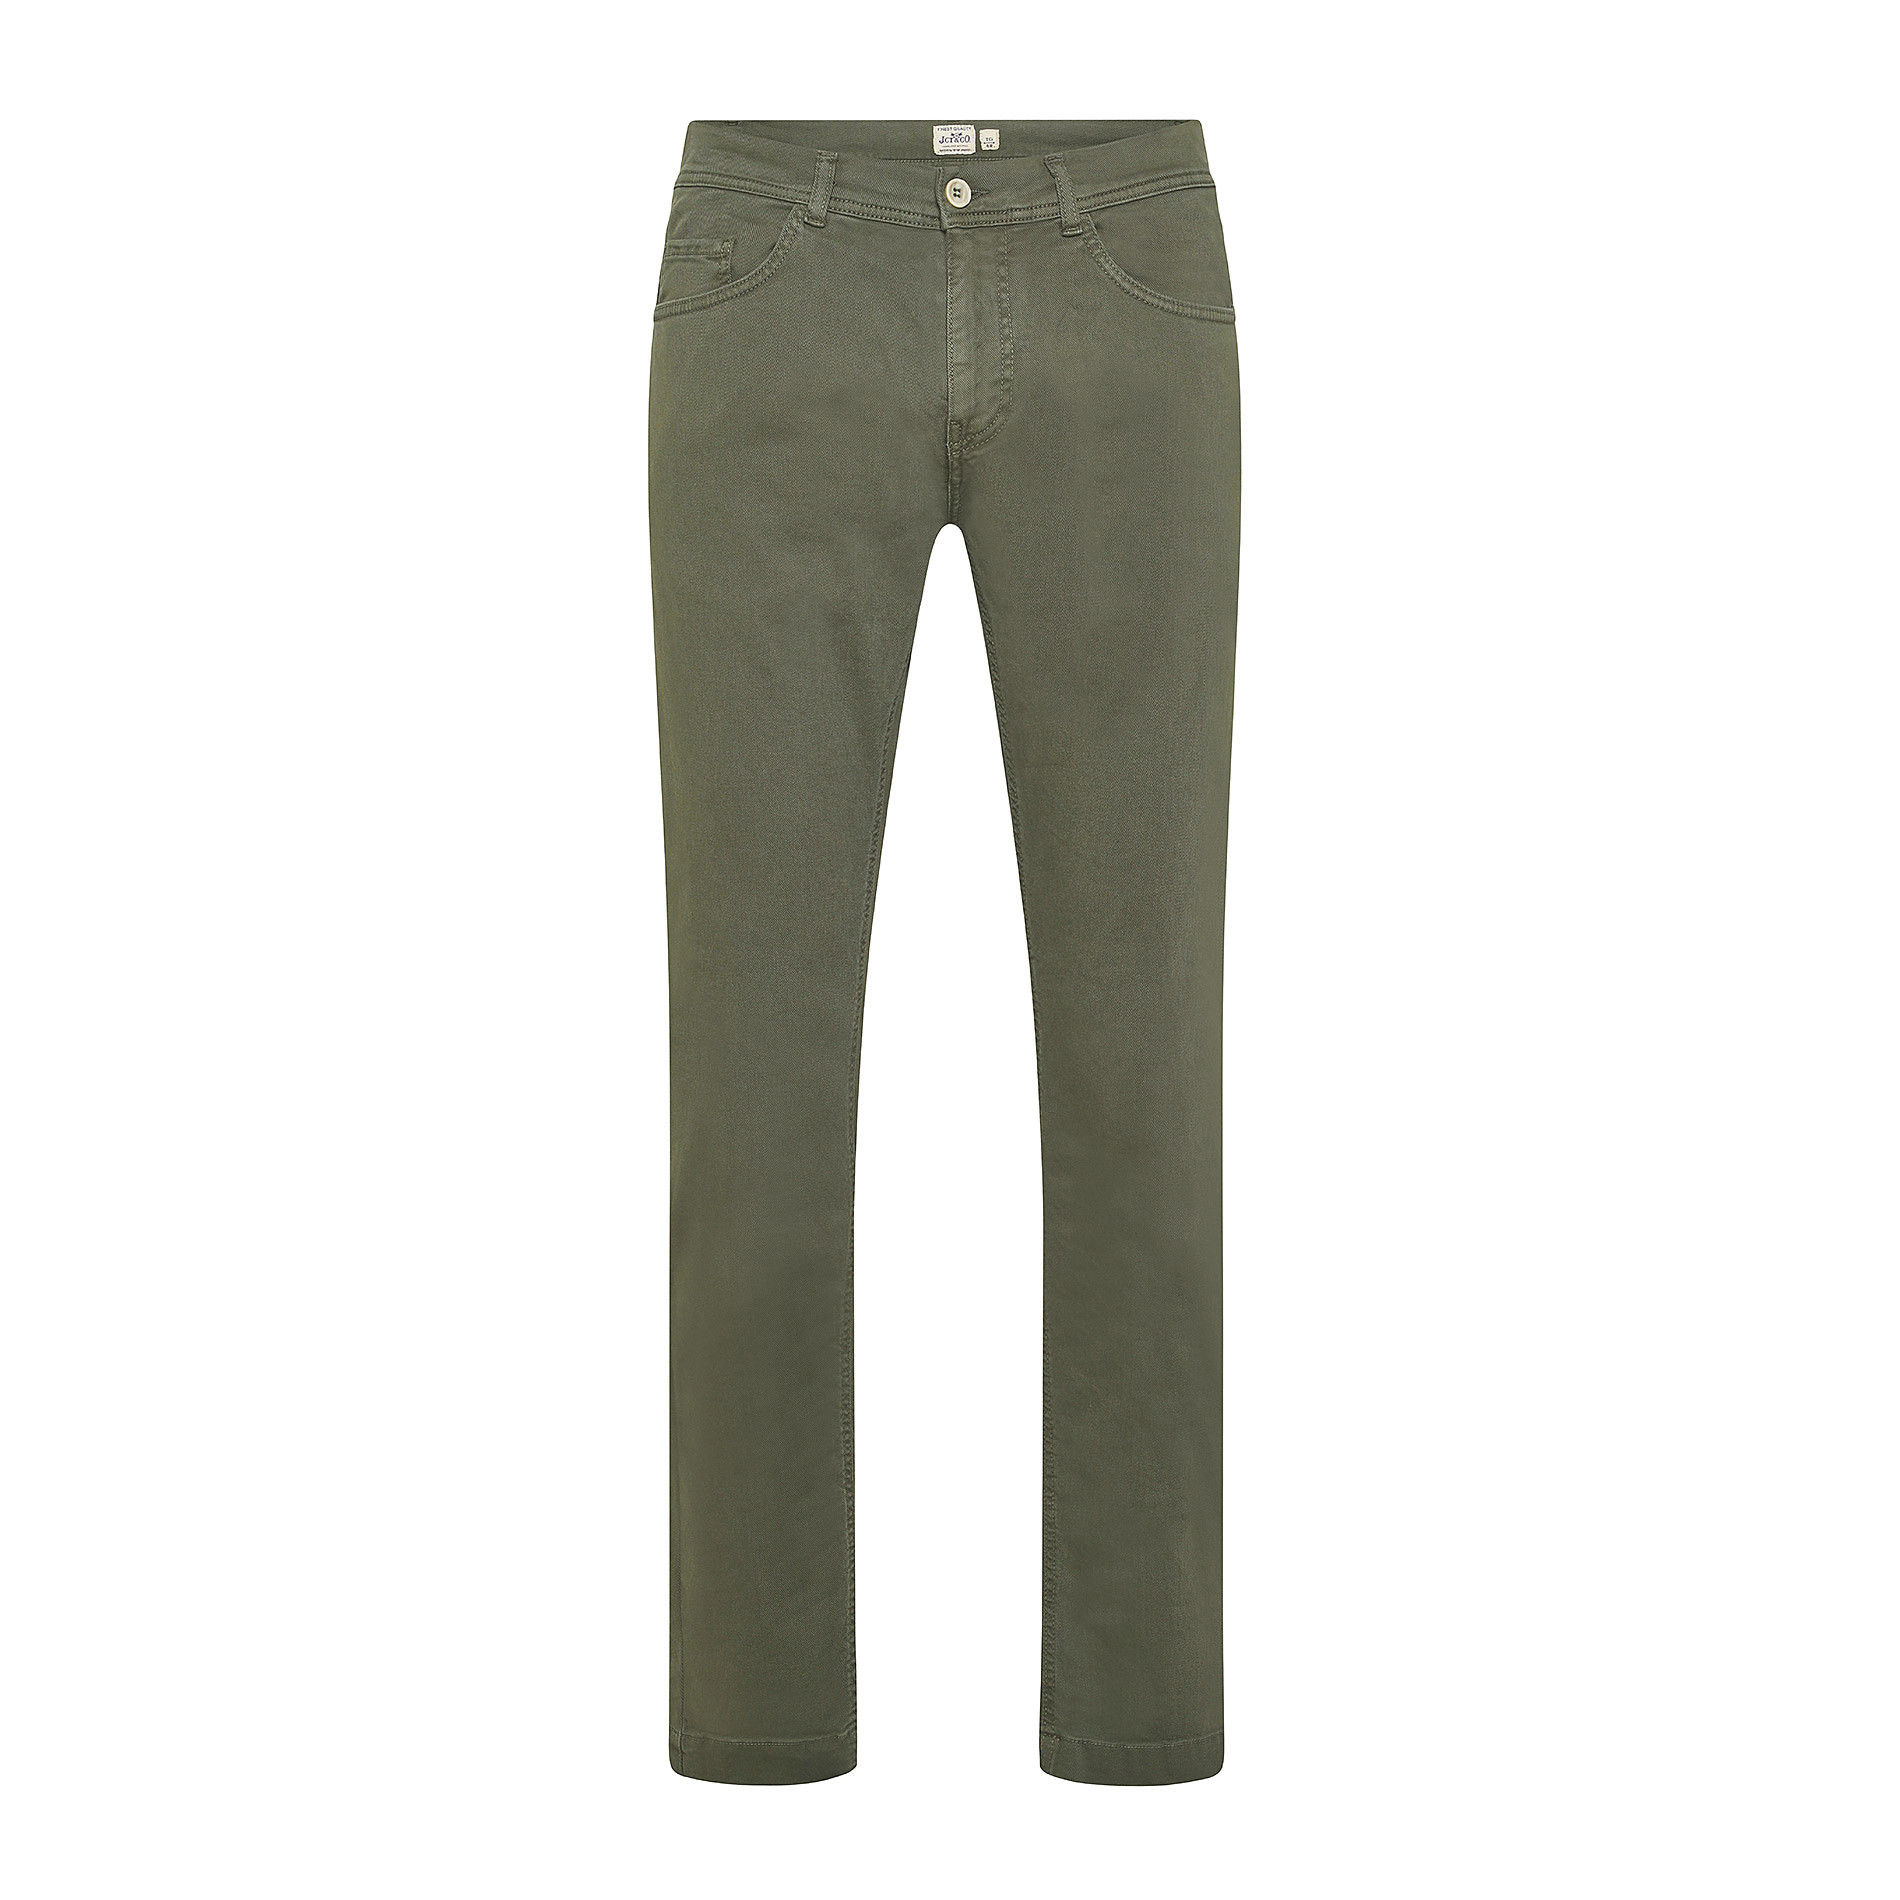 Pantalone cotone stretch 5 tasche JCT, Verde scuro, large image number 0